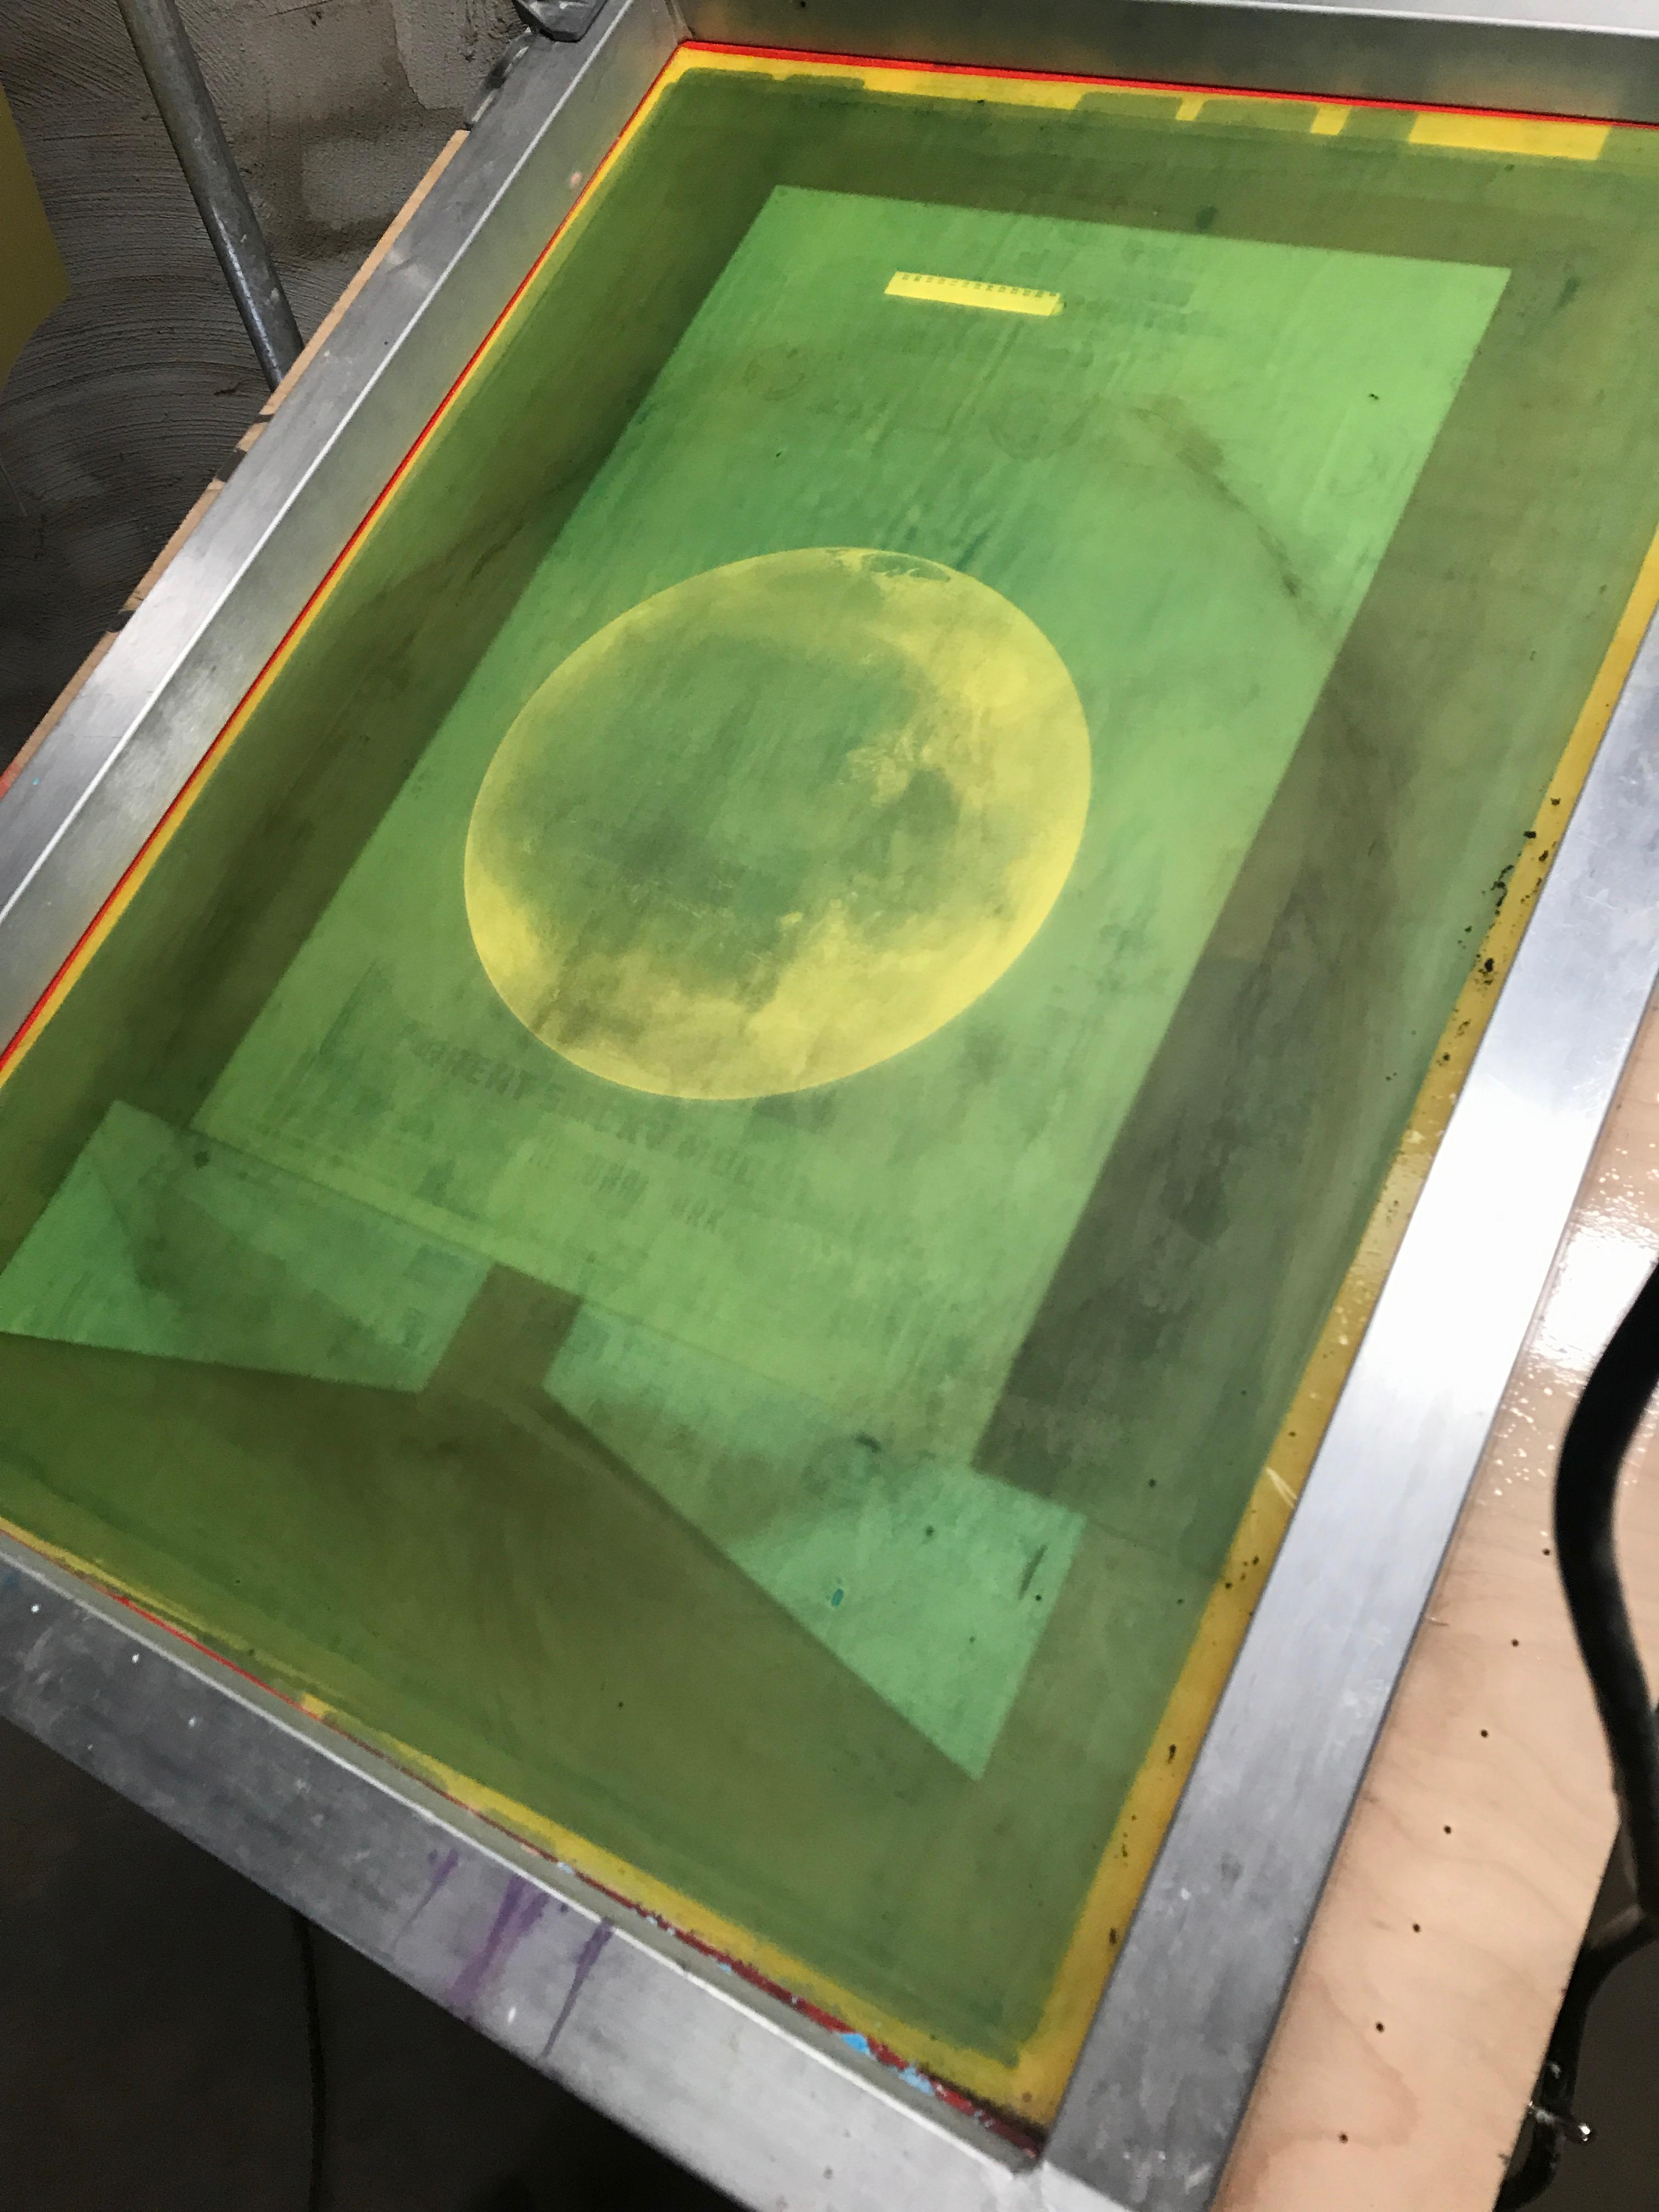 The screen printing